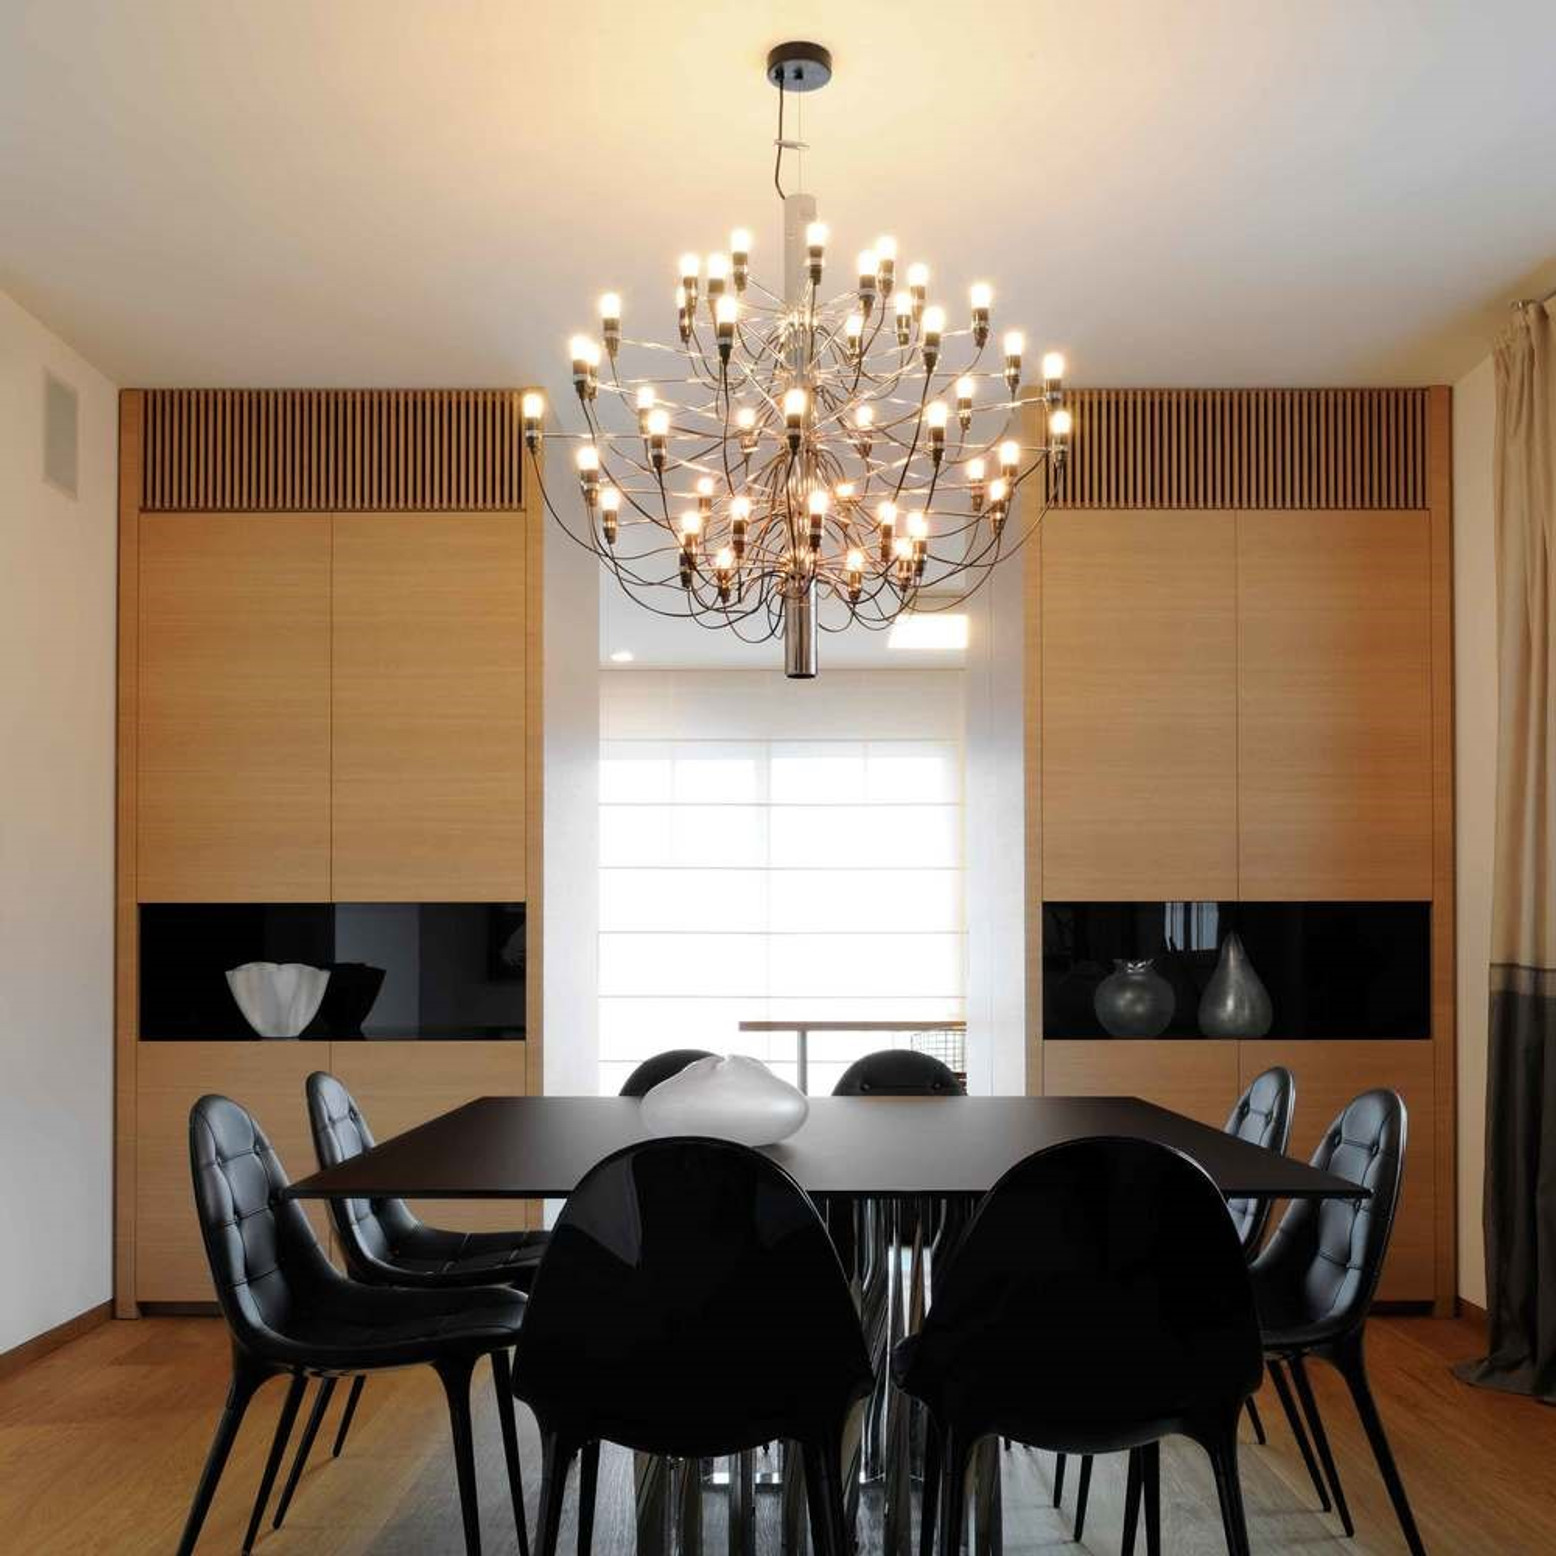 2097 – A Chandelier That Bridges the Gap Between Traditional and Ultramodern